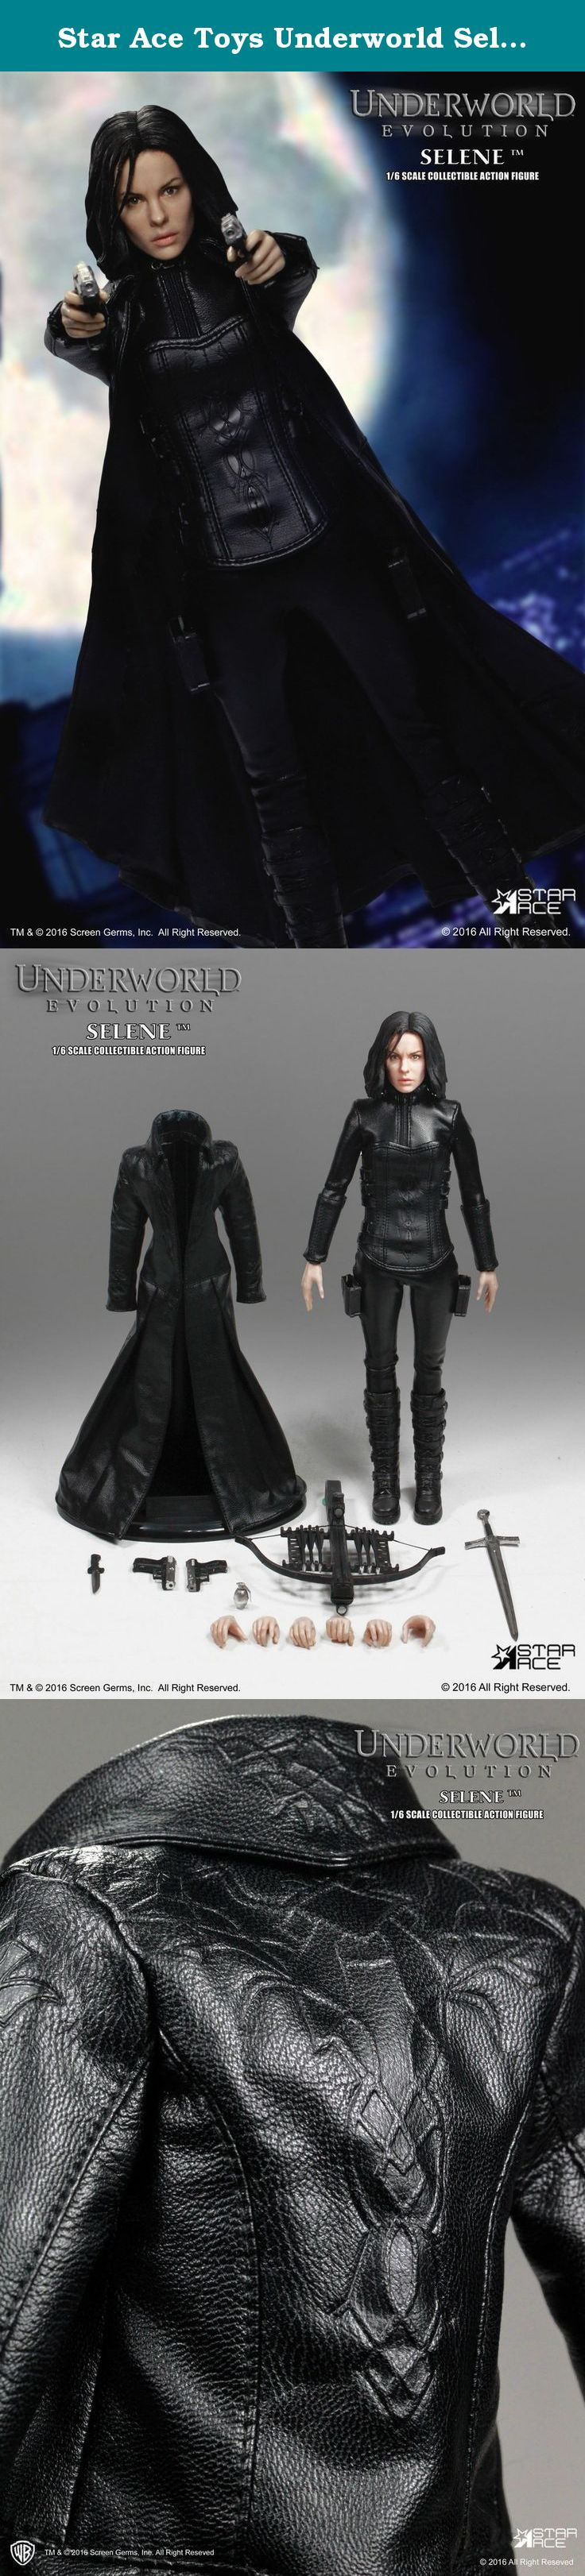 Star Ace Toys Underworld Selene Collectible Figure 1/6 Scale SA0033. If you want to buy anything, you needn't to worry about the tax, because I will declare the price of items as low as possible, trust me, you don't need to pay any tax... The item will be shipped from China, if you are in US,I will ship the item via e-packet, you will get it in about 7-15 days since you bought it, if you aren't in US,I will ship the item via China Post, you will get it in about 15-20 days... I will try my...